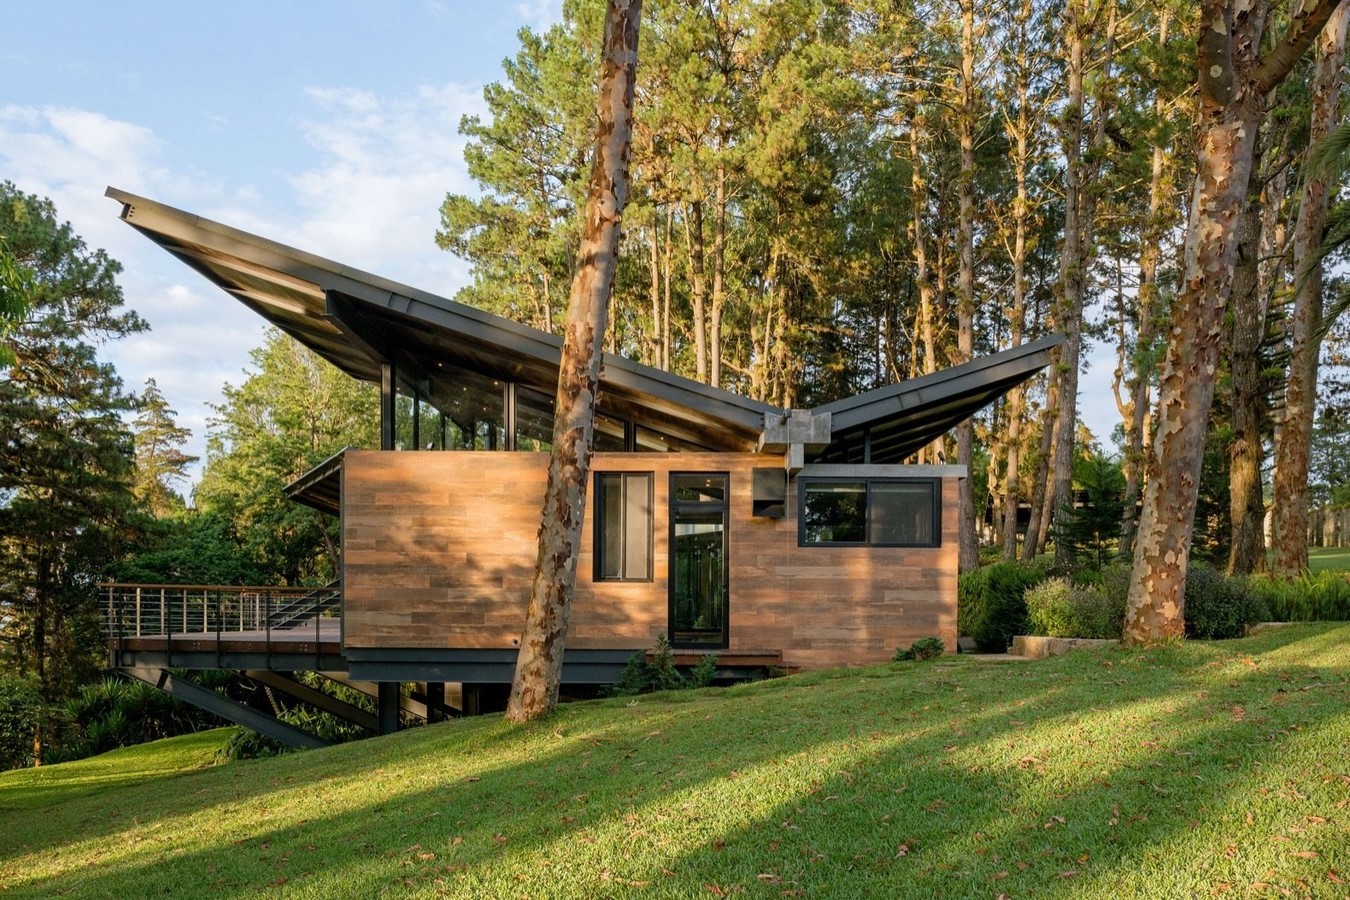 10 Examples of butterfly roofing in the Mid-Century Classic Architecture - Sheet10